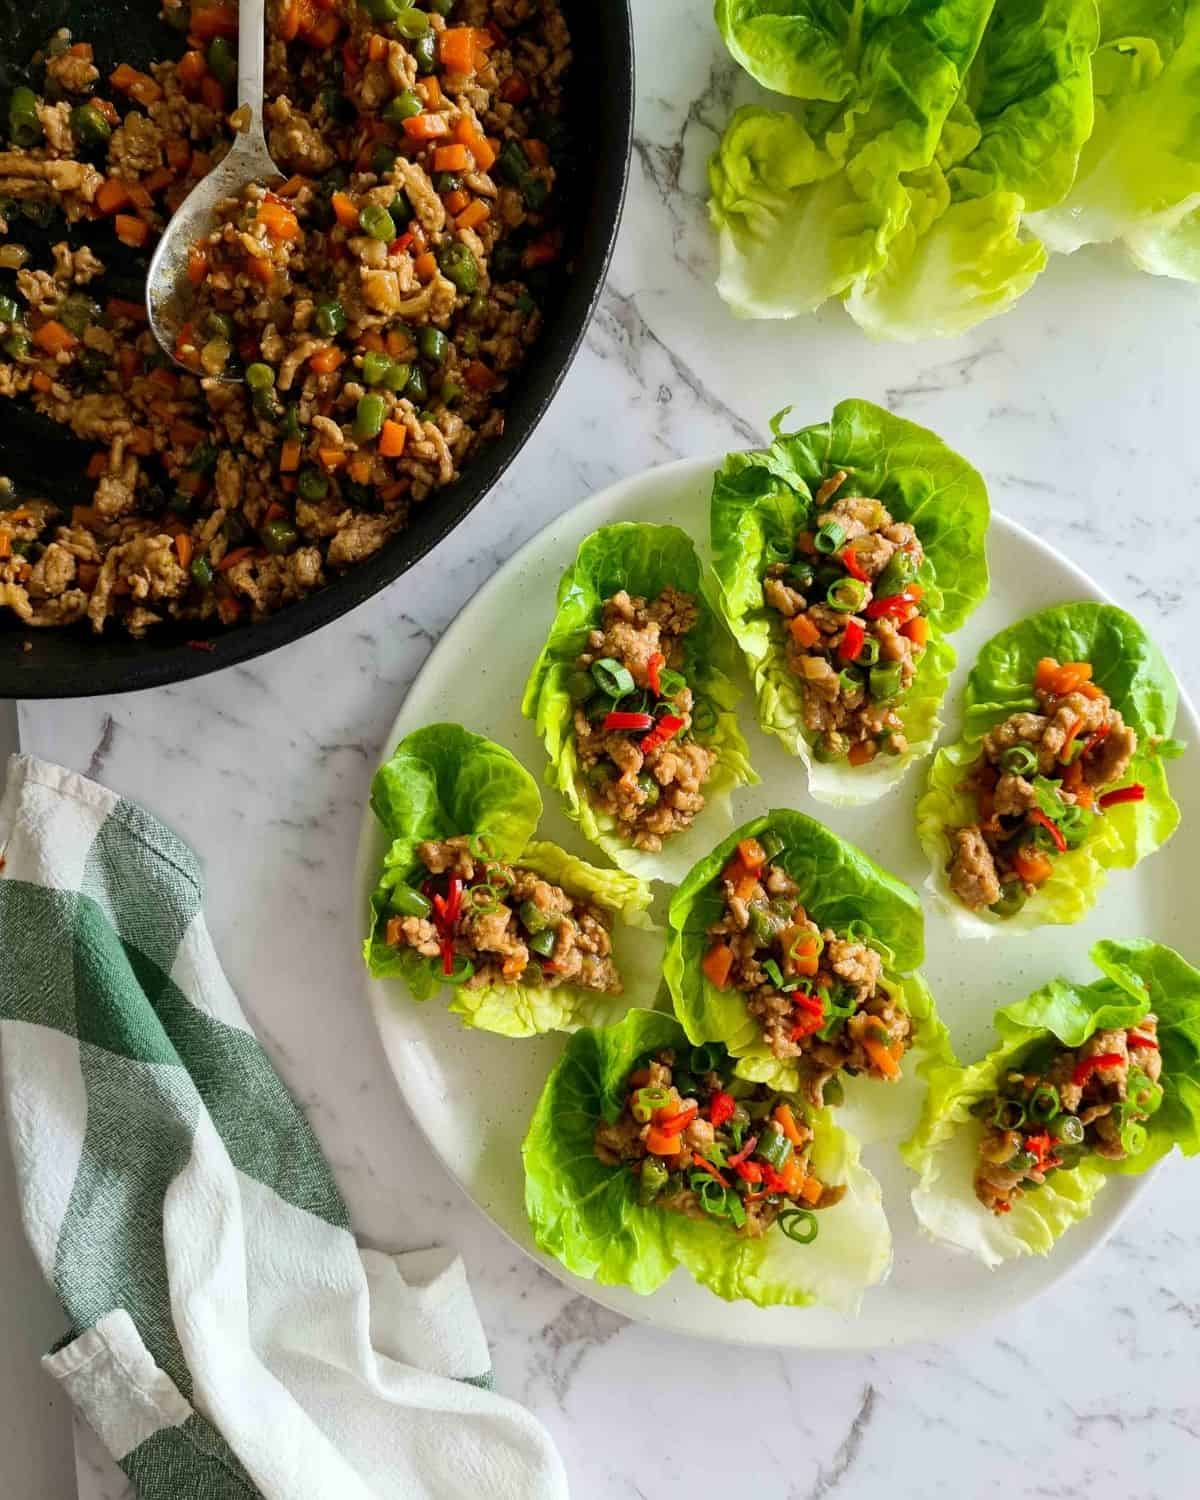 Overhead view of a plate full of lettuce wraps with extra filling and lettuce on the side